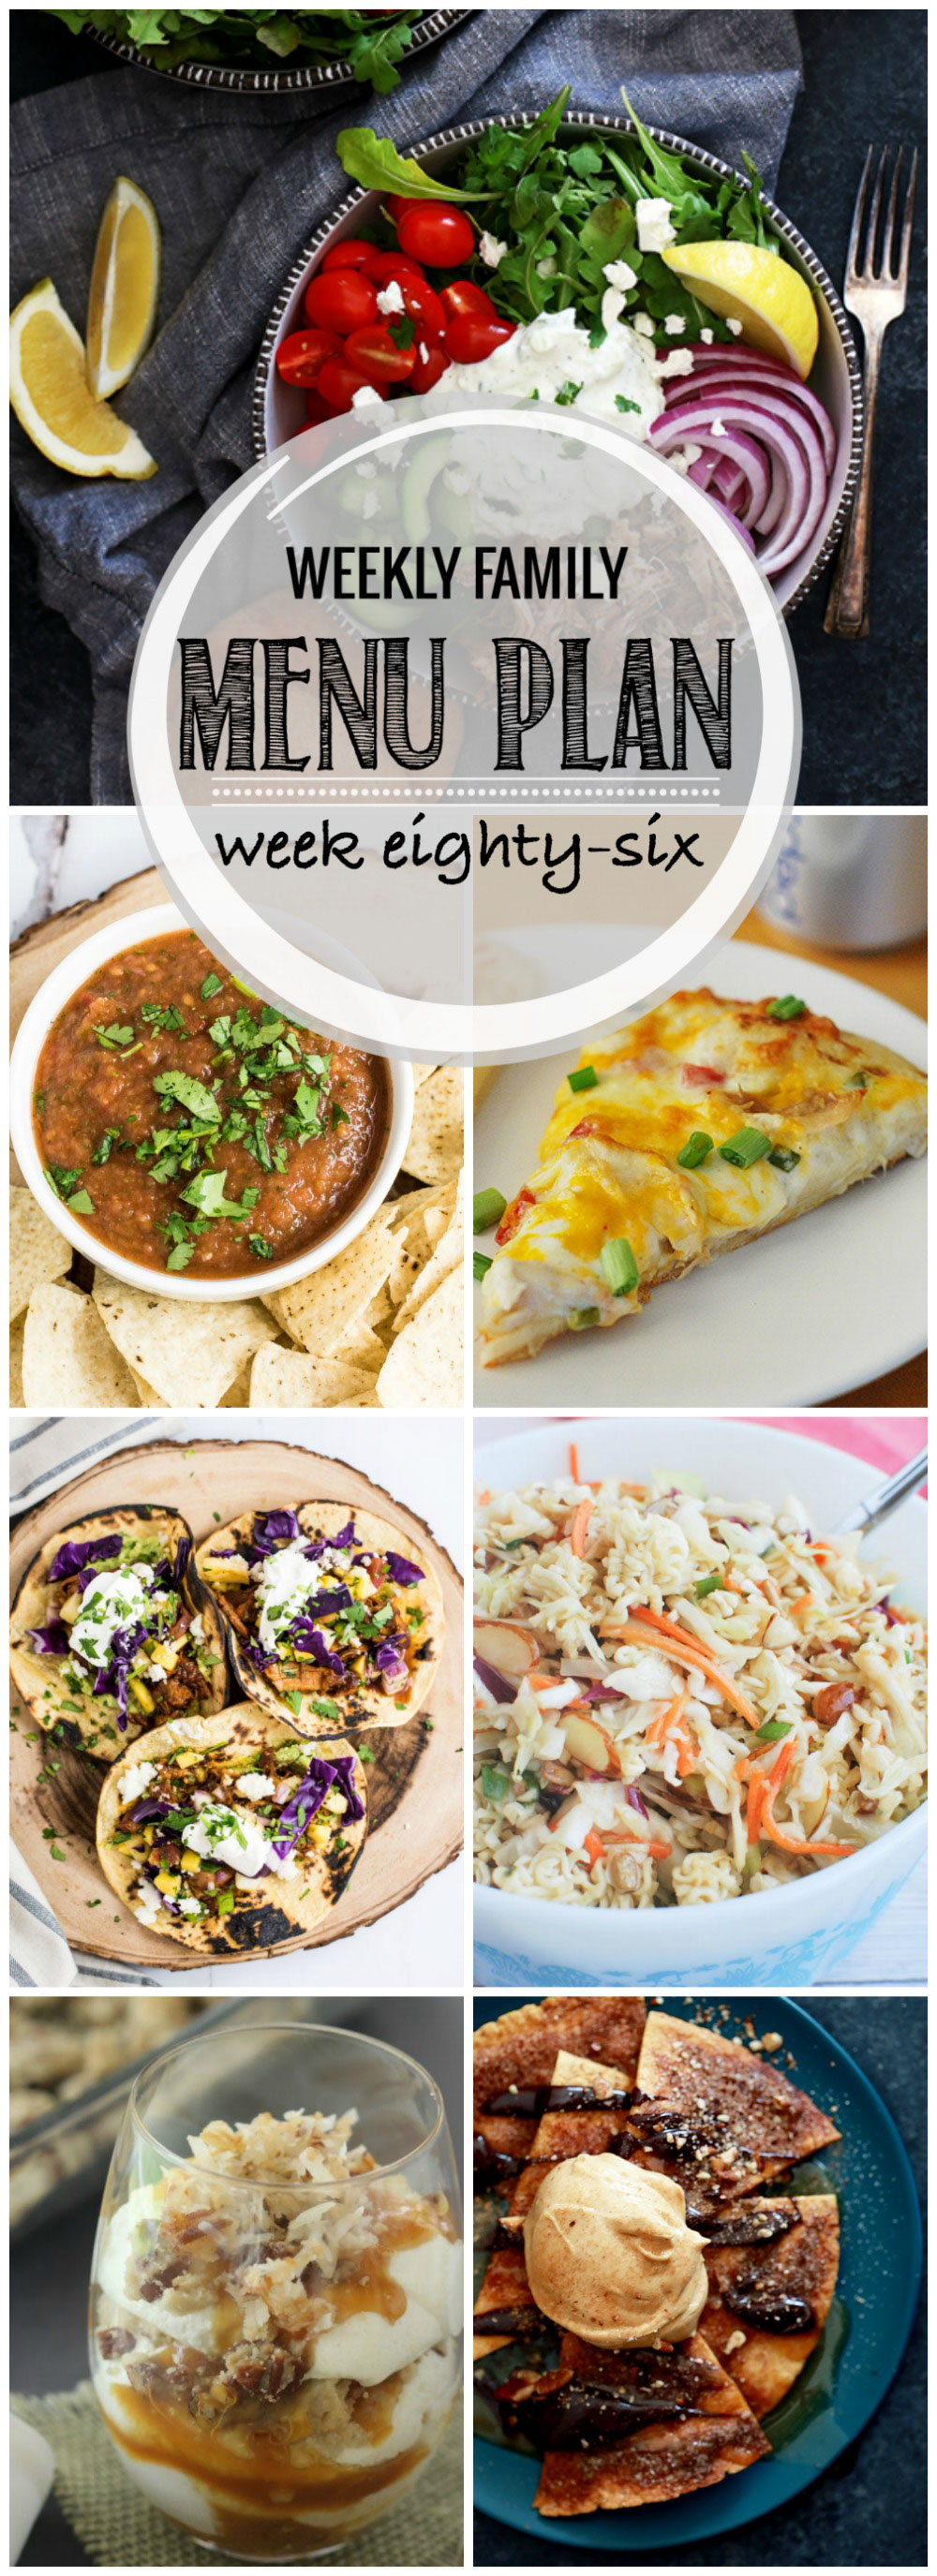 Weekly Family Menu Plan - Week Eighty-six is brought to you by a group of food bloggers who love to plan ahead! A weekly edition of thoughtfully prepared recipes is rounded up to get you through those busy weeks! | www.cookingandbeer.com